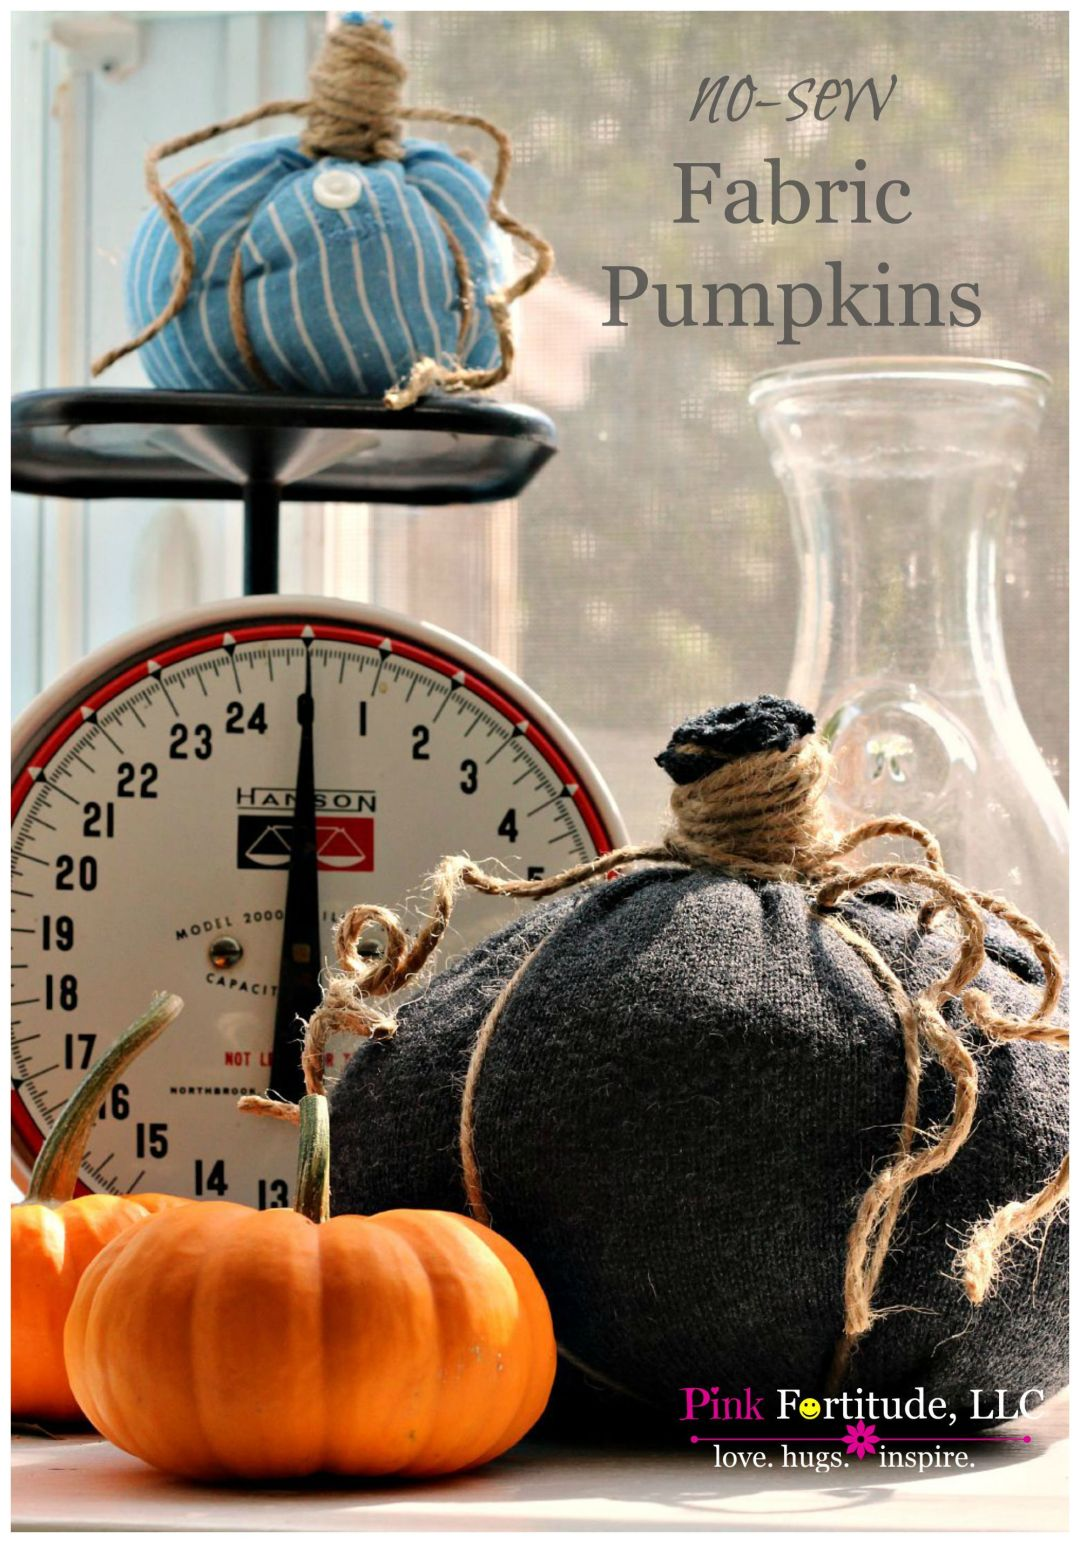 I've seen these adorable little fabric pumpkins all over Pinterest and knew I had to try to make them myself! They are so easy to make! If you have any old shirts, sweaters, or come across a cheap yard sale find, this is a brilliant way to upcycle the fabric into these cute and festive fall pumpkins. Here's how!